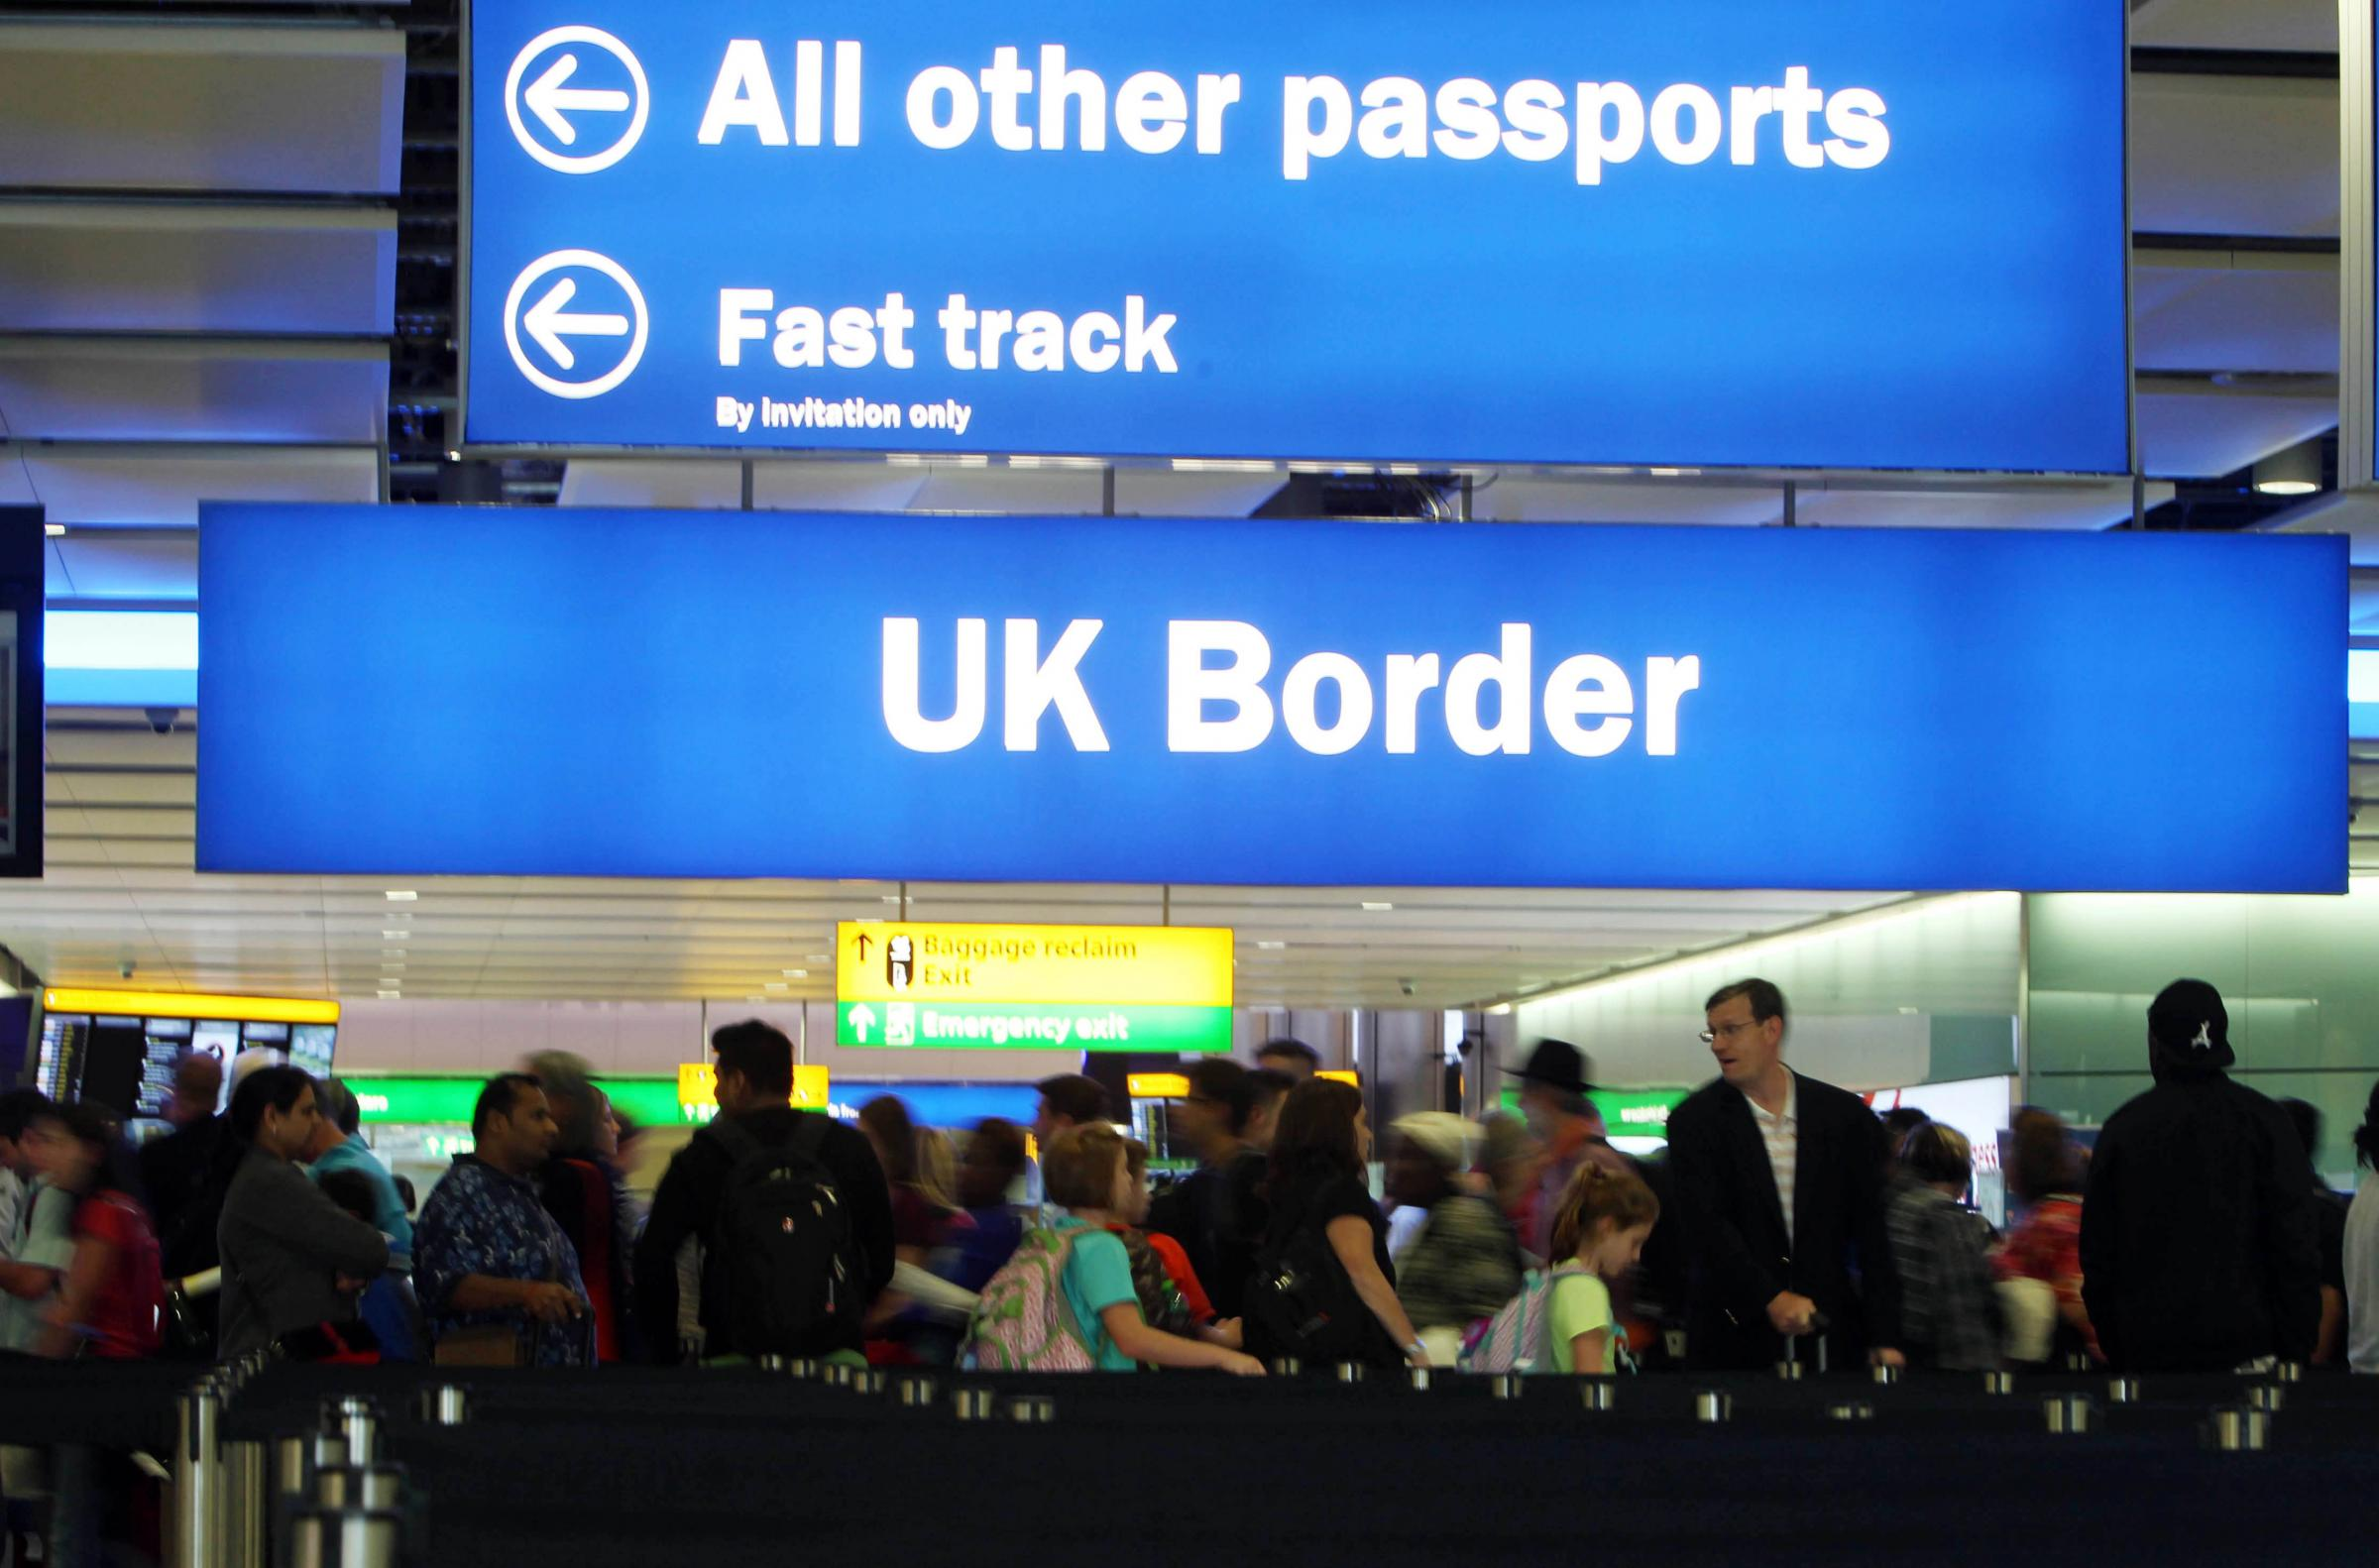 Cutting migration could cost Scotland £10 billion a year after Brexit, says new analysis